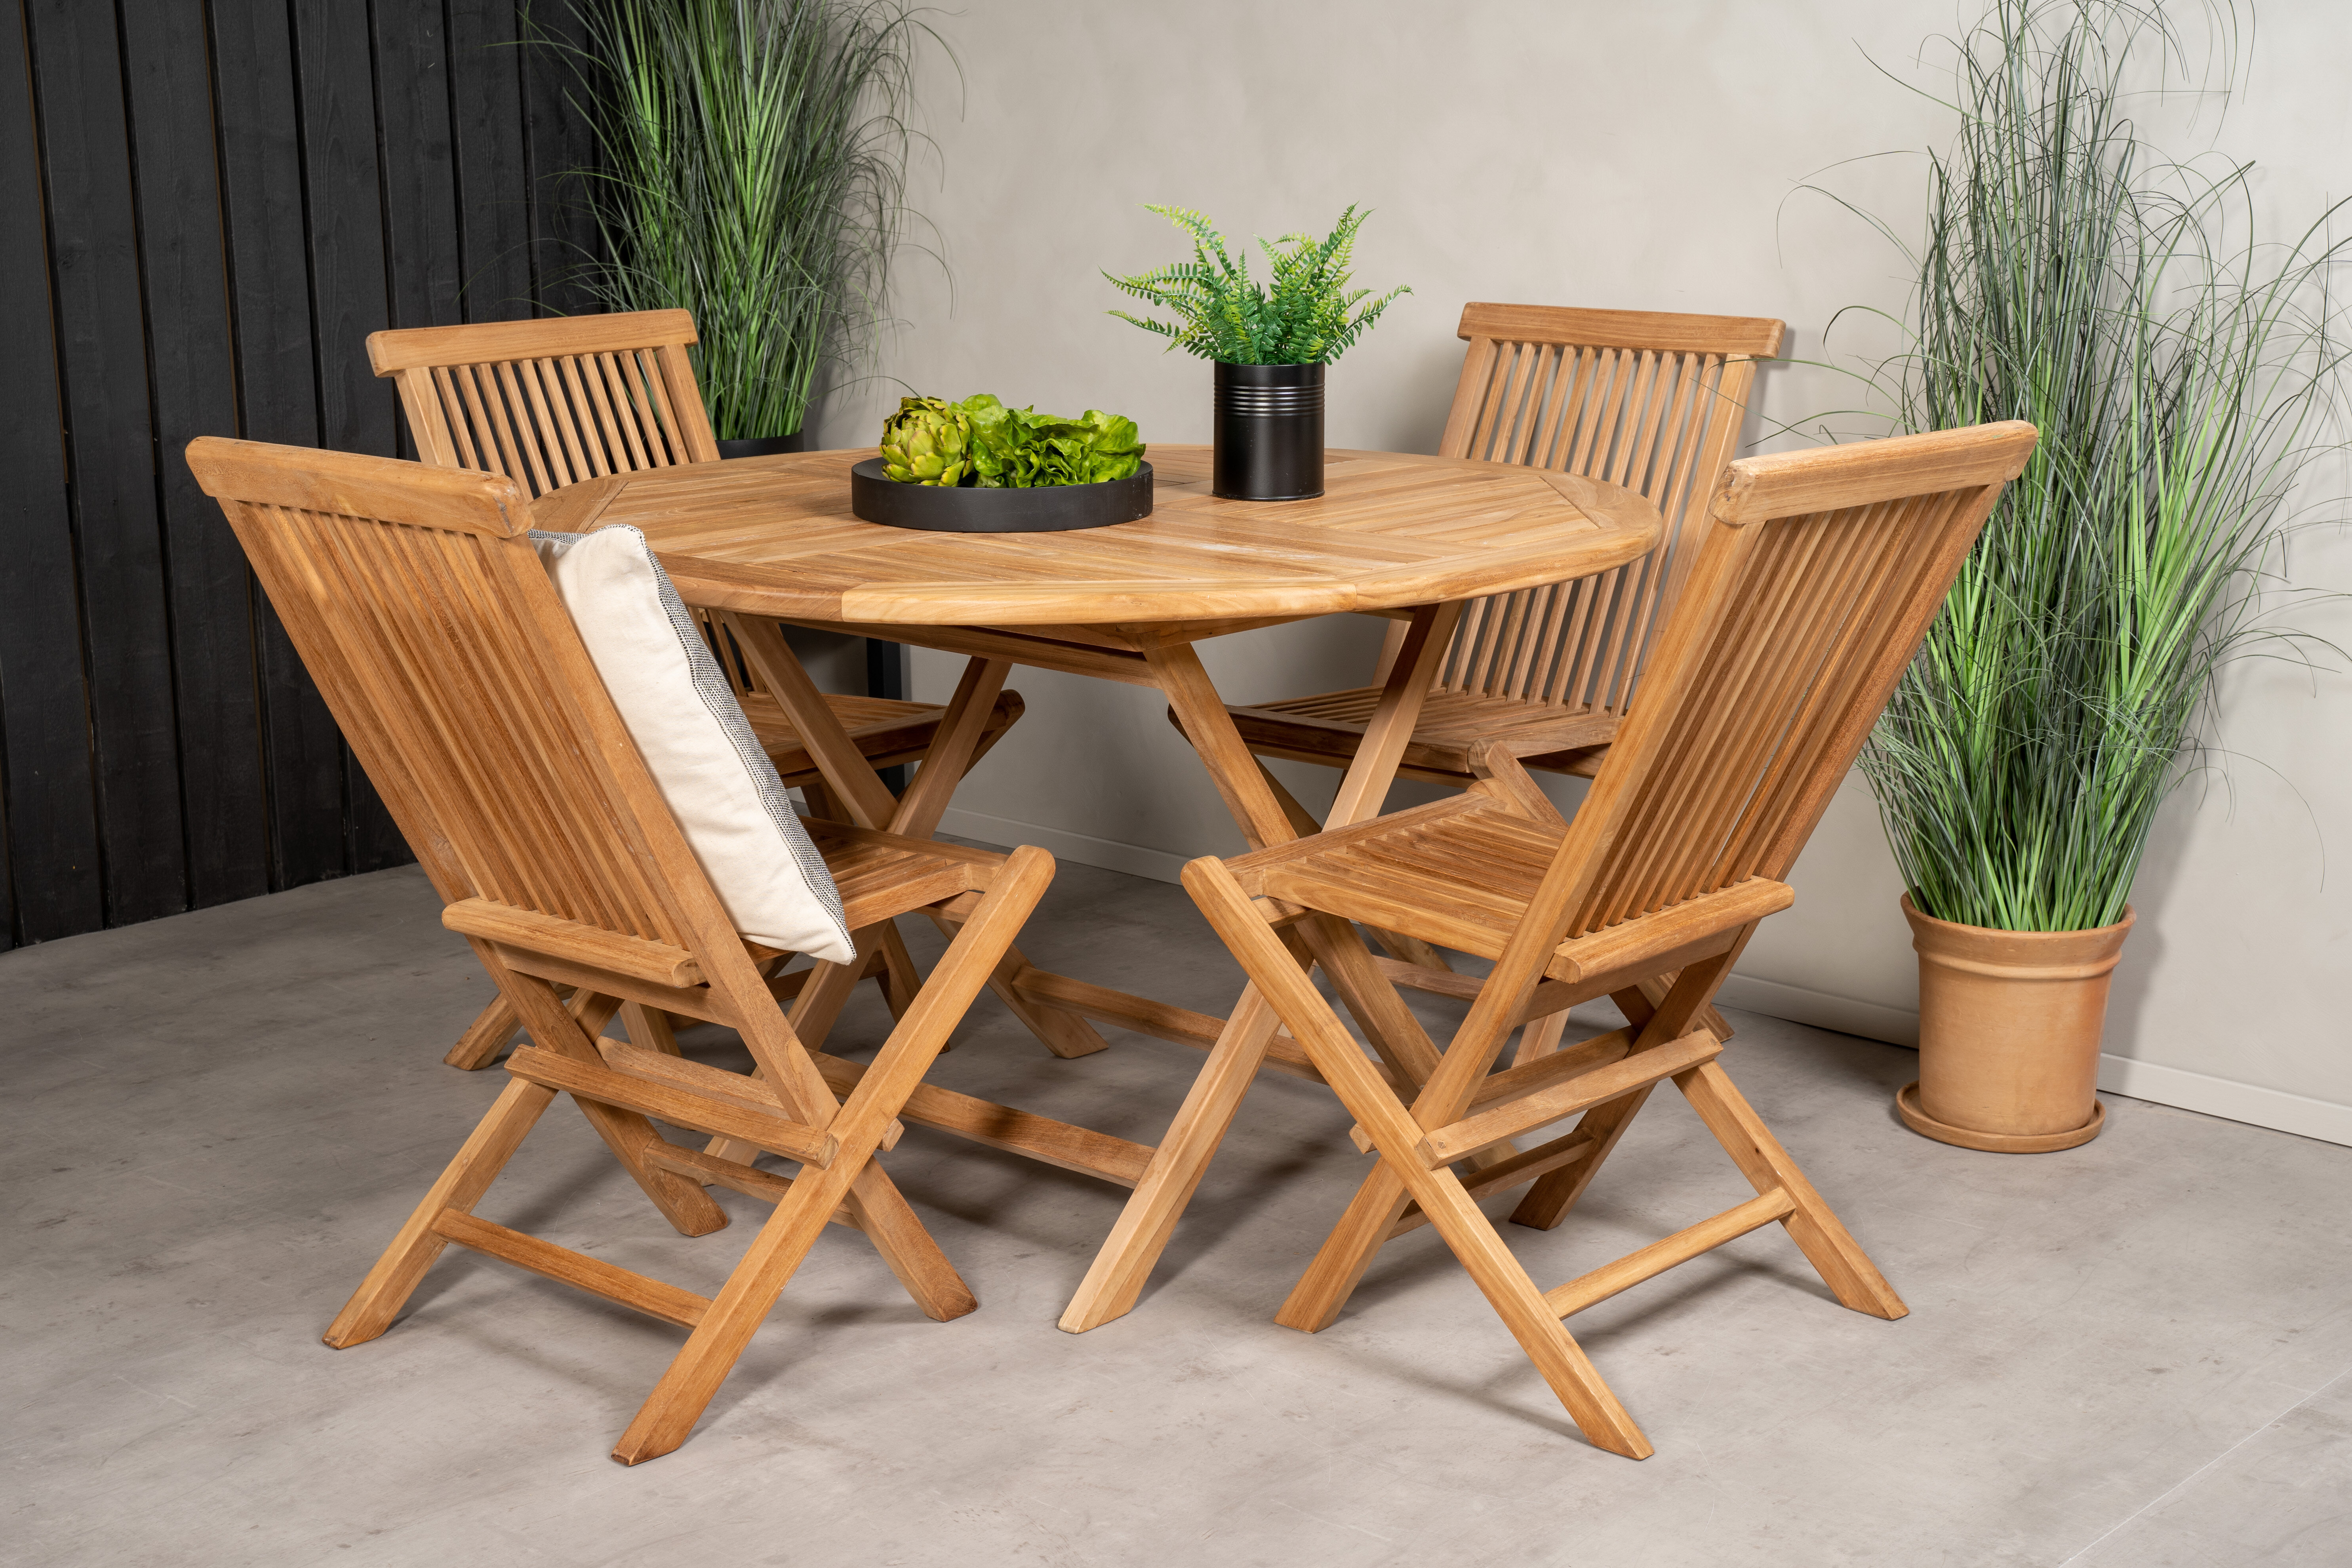 Dakota Fields Baek 4 Seater Dining Set Wayfair Co Uk